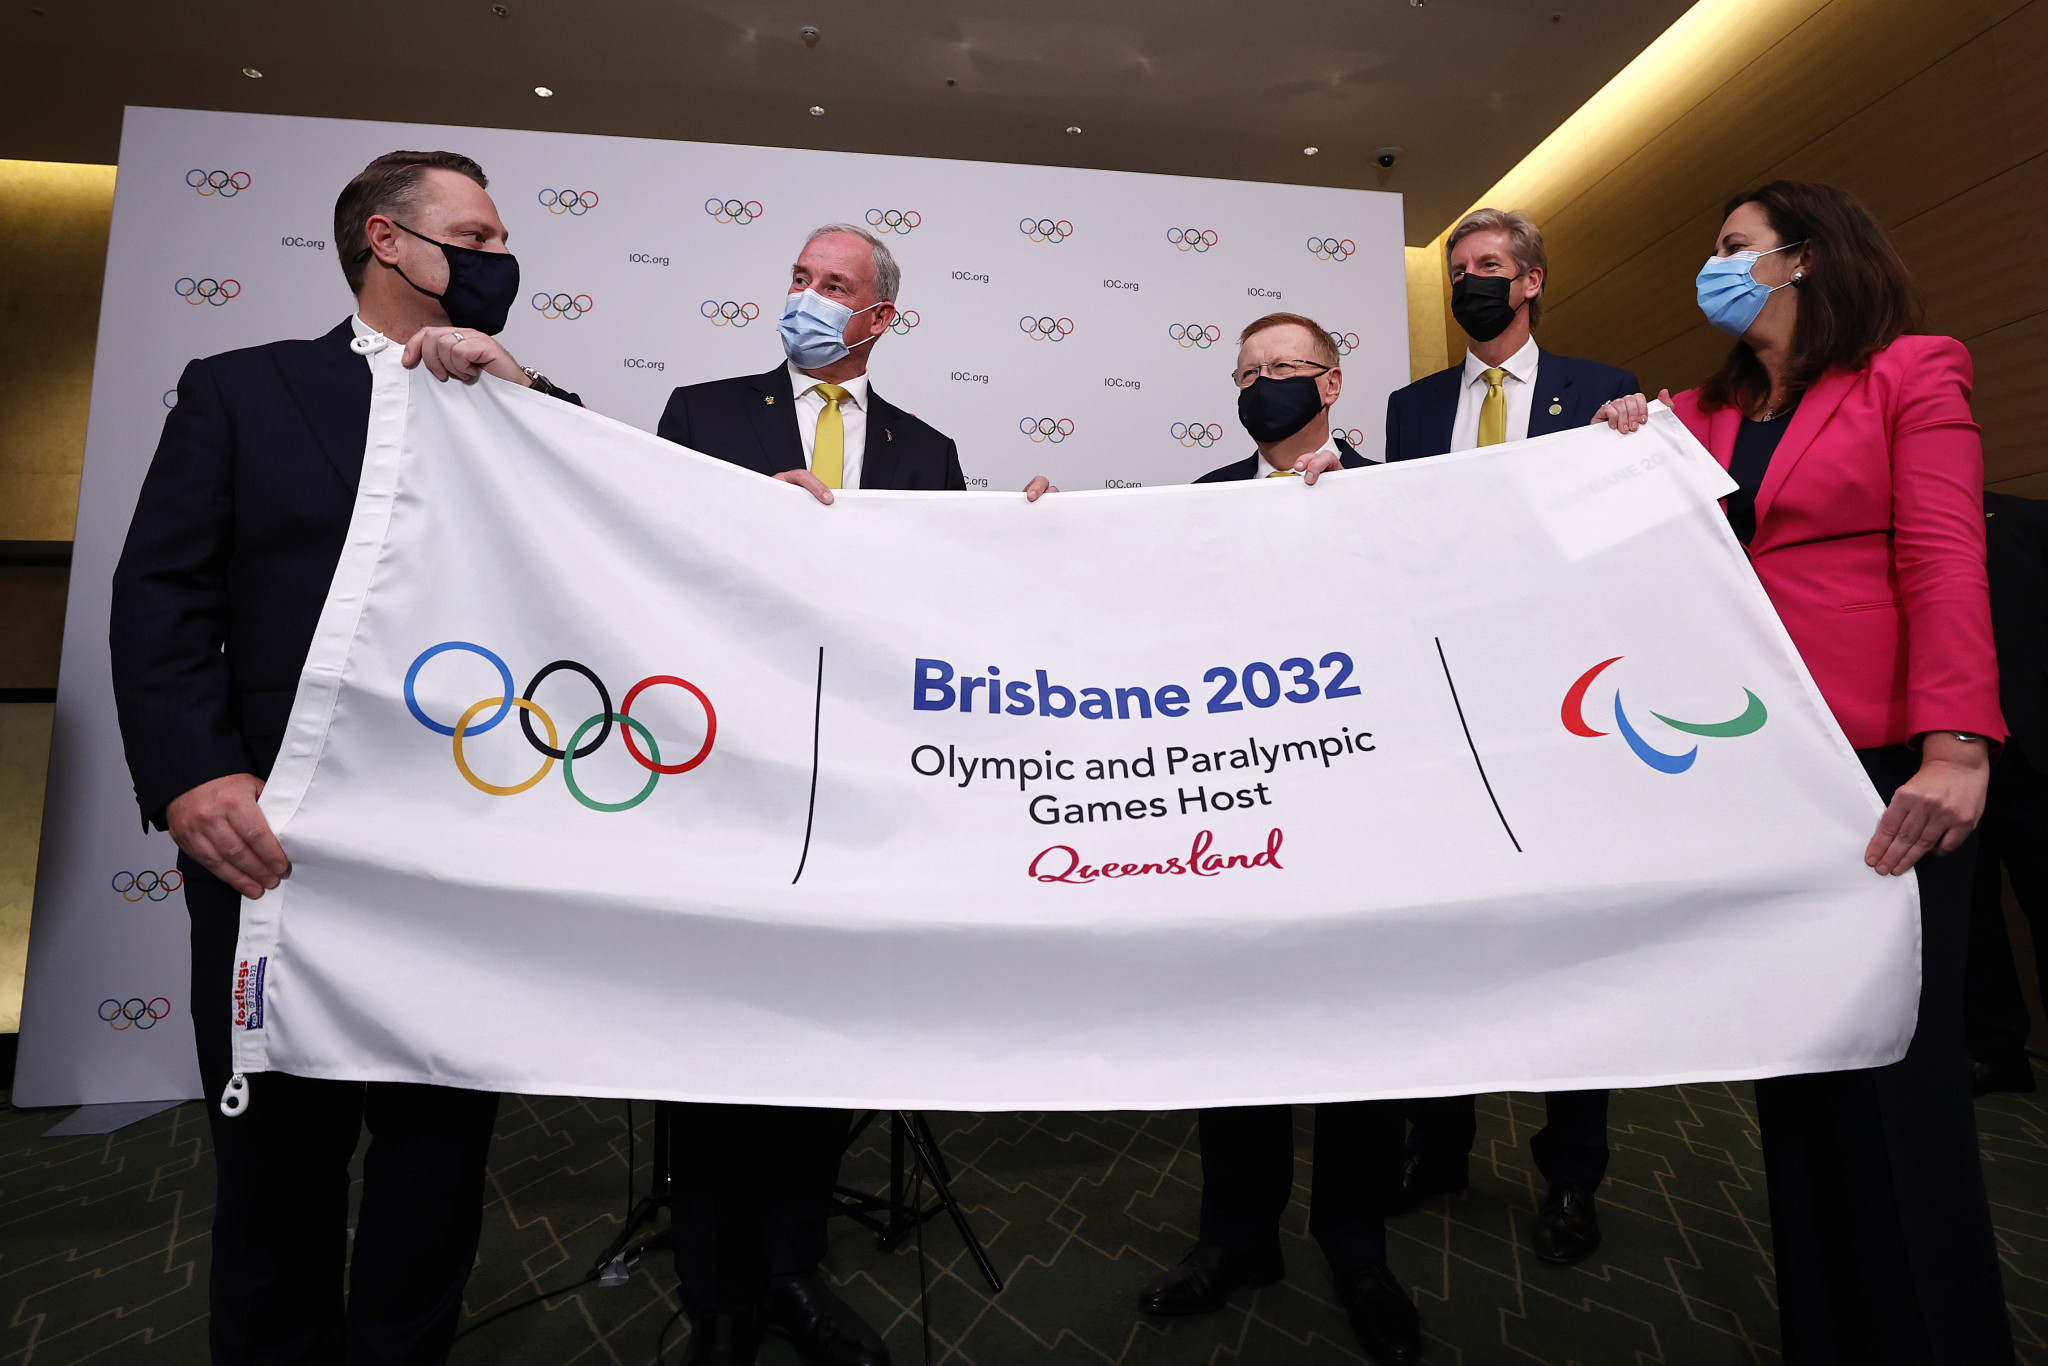 Australian Olympic Committee President John Coates, third right, has underlined the importance of the athlete representative on the Brisbane 2032 Organising Committee  ©Getty Images